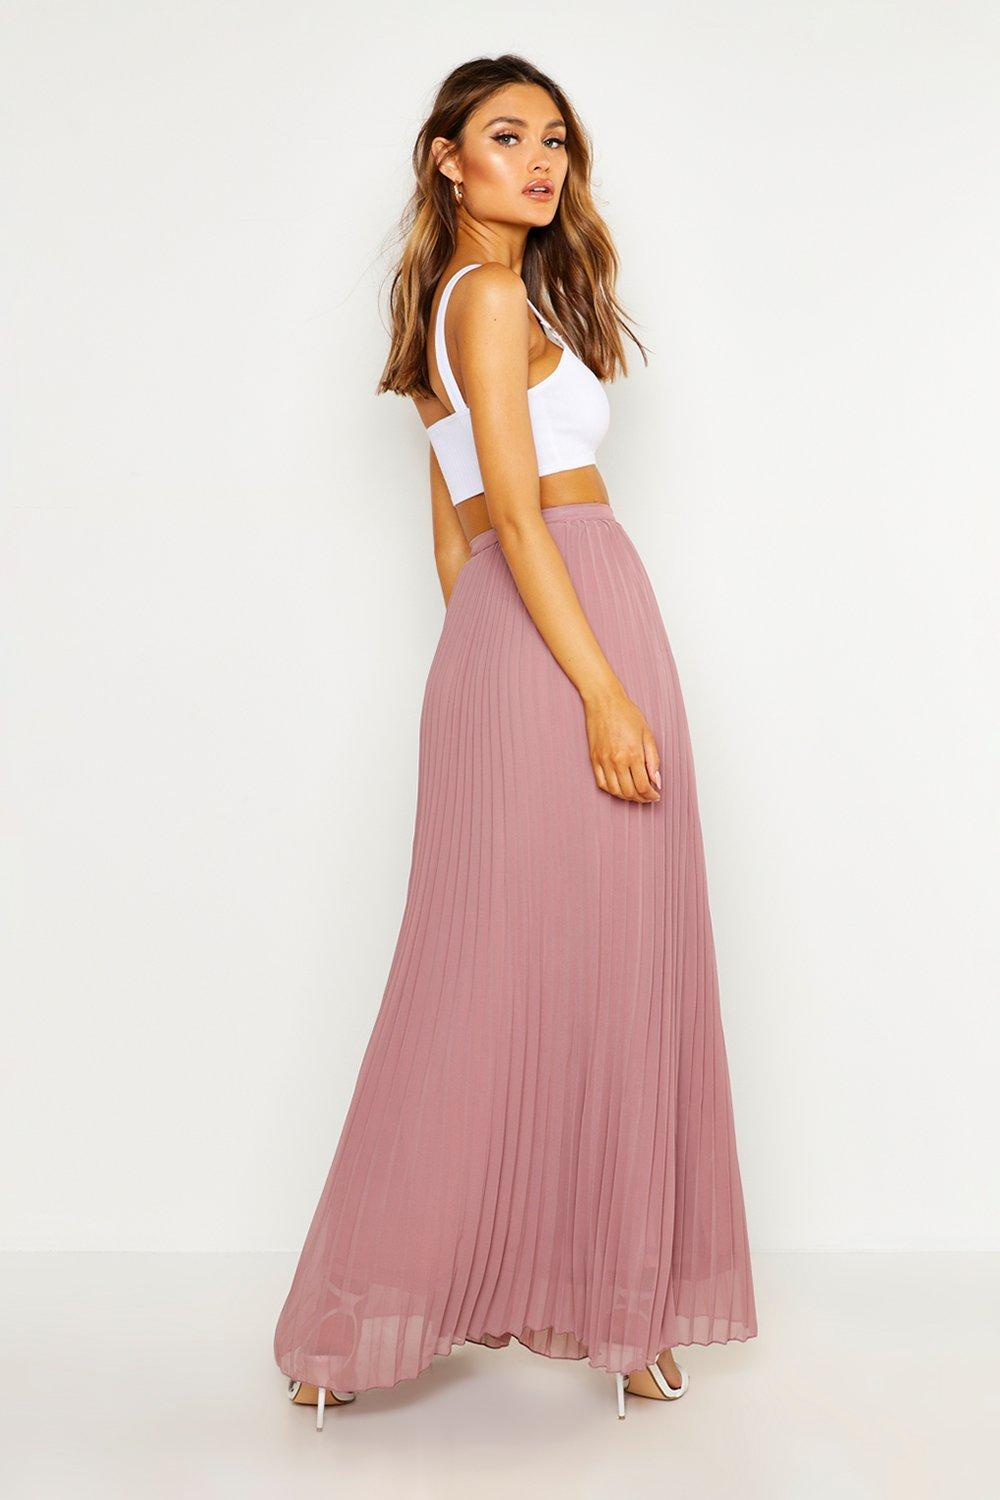 NEW-Boohoo-Womens-Chiffon-Pleated-Maxi-Skirt-in-Lining-100-Polyester